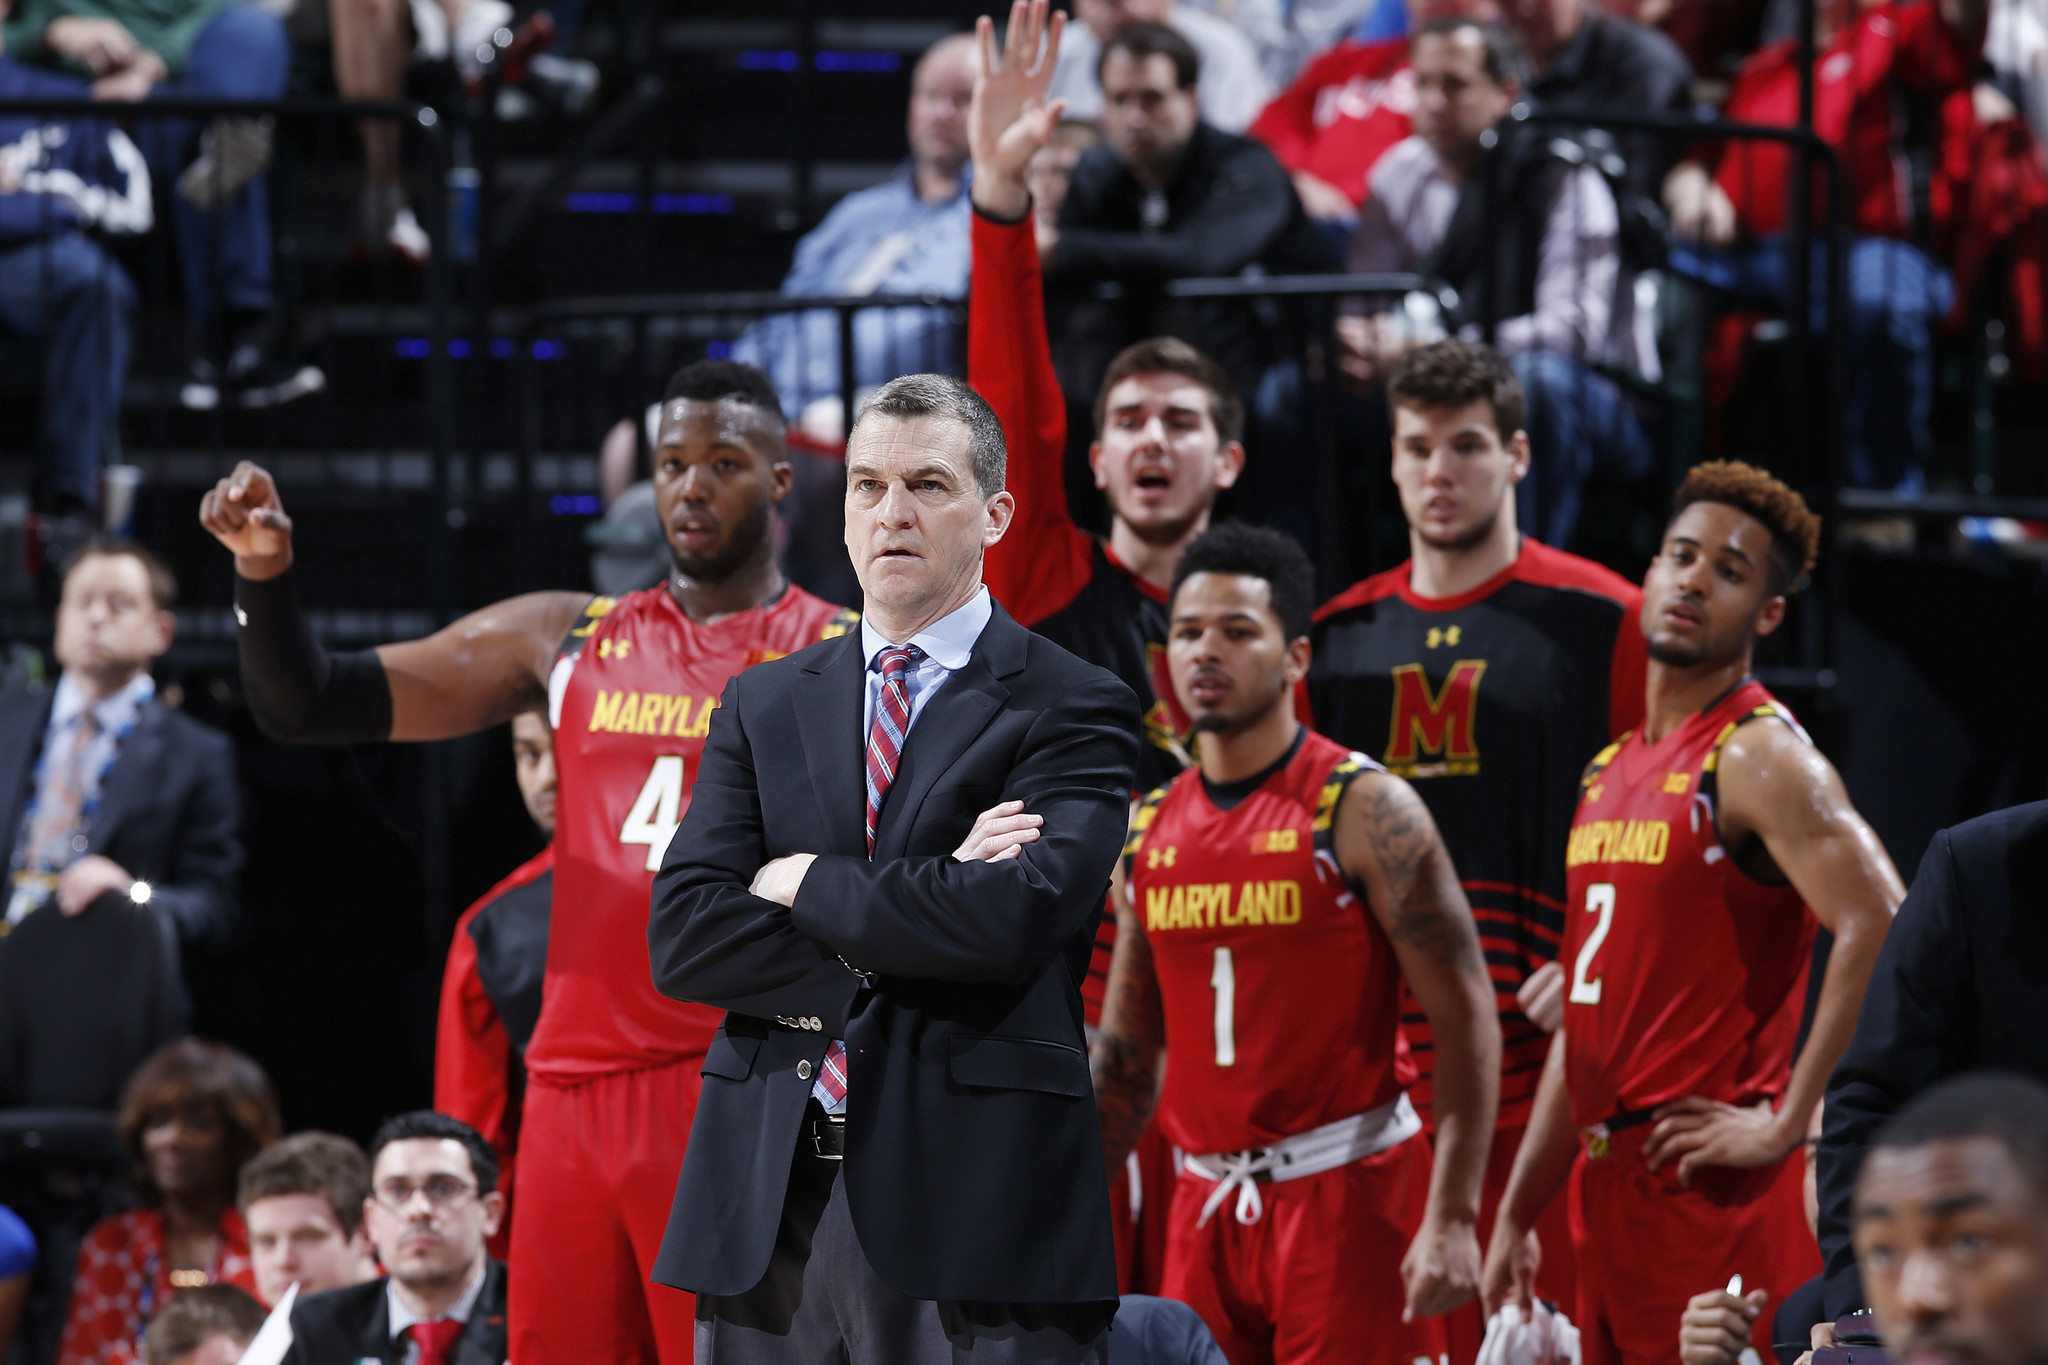 Bal-espn-s-jeff-goodman-includes-maryland-on-short-list-of-most-overrated-basketball-teams-20160930